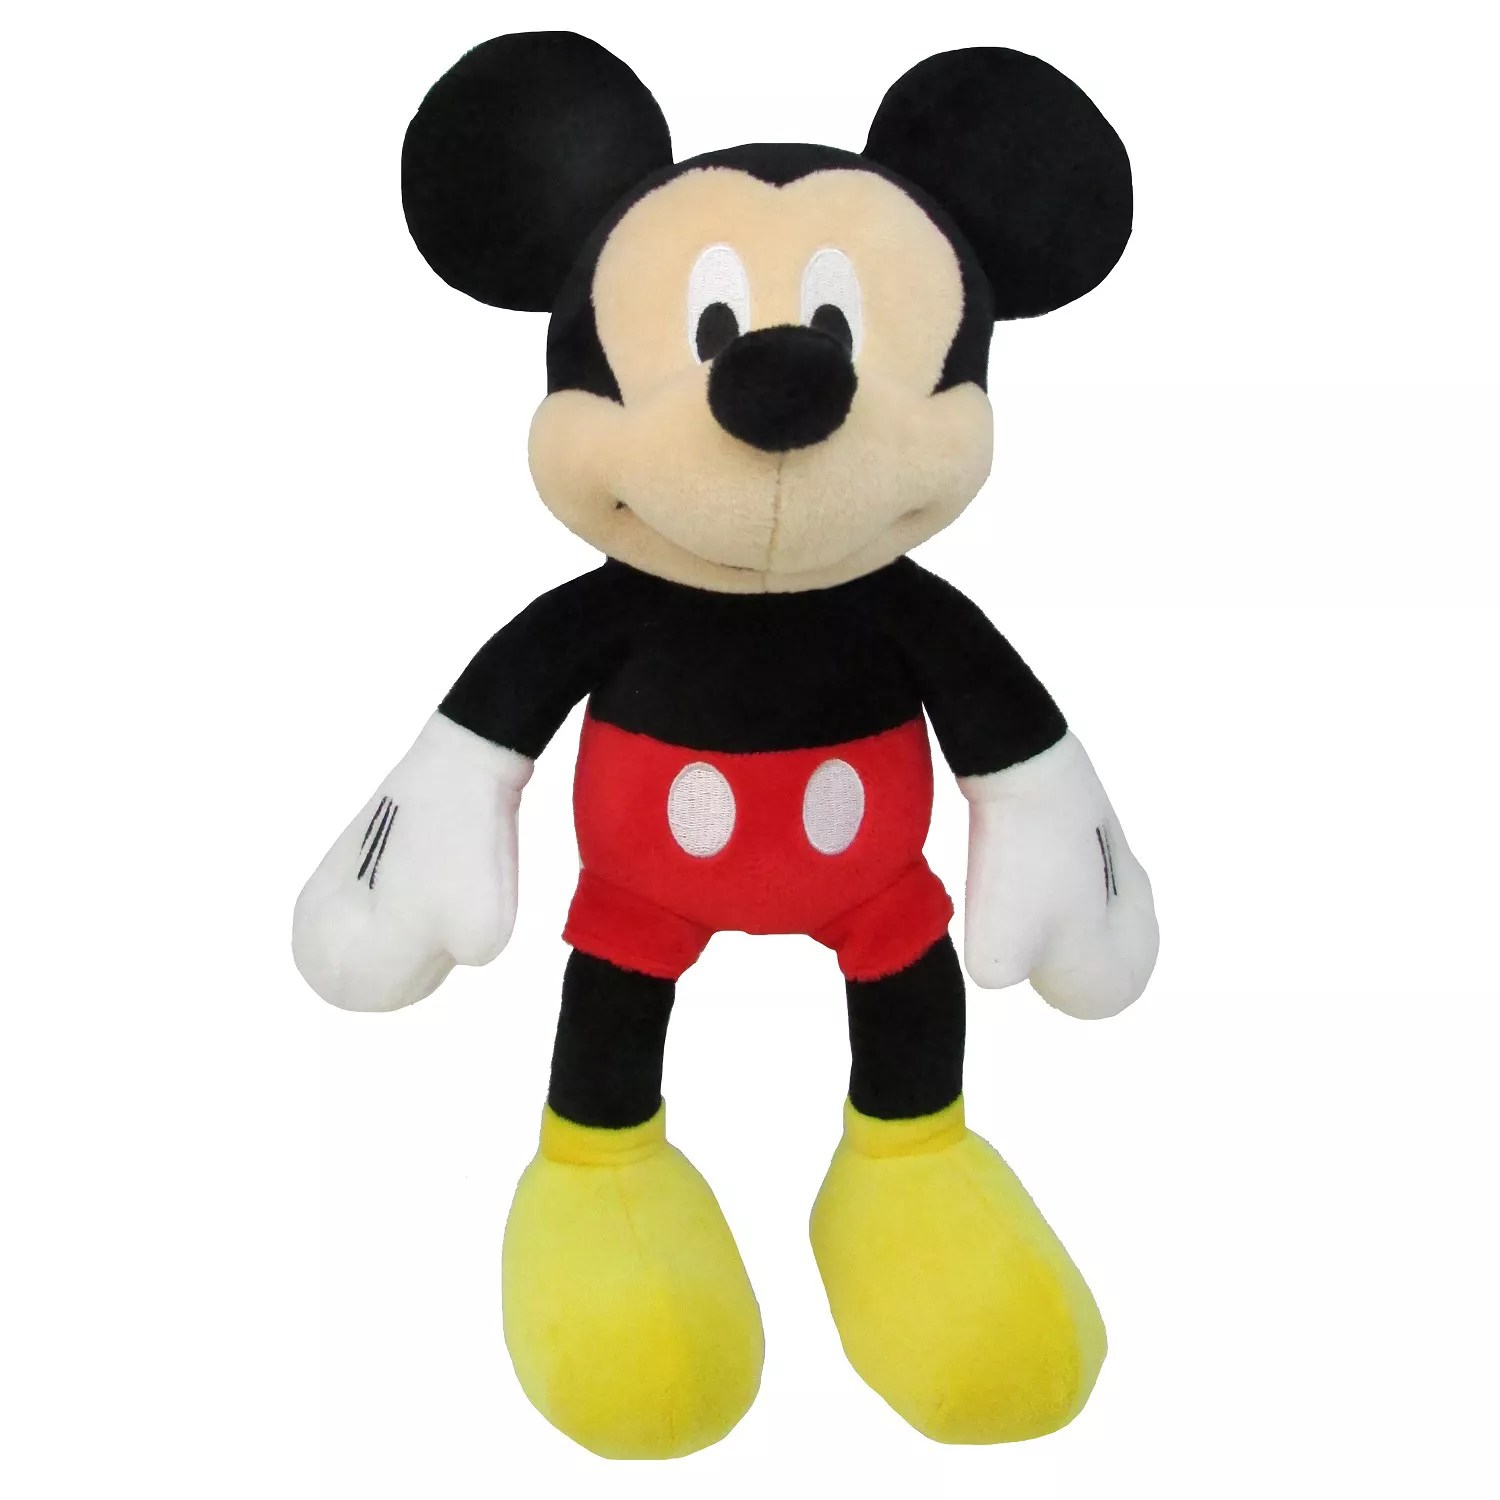 Disney Mickey Disney Mickey Mouse Jingle Plush Toy By Kids Preferred